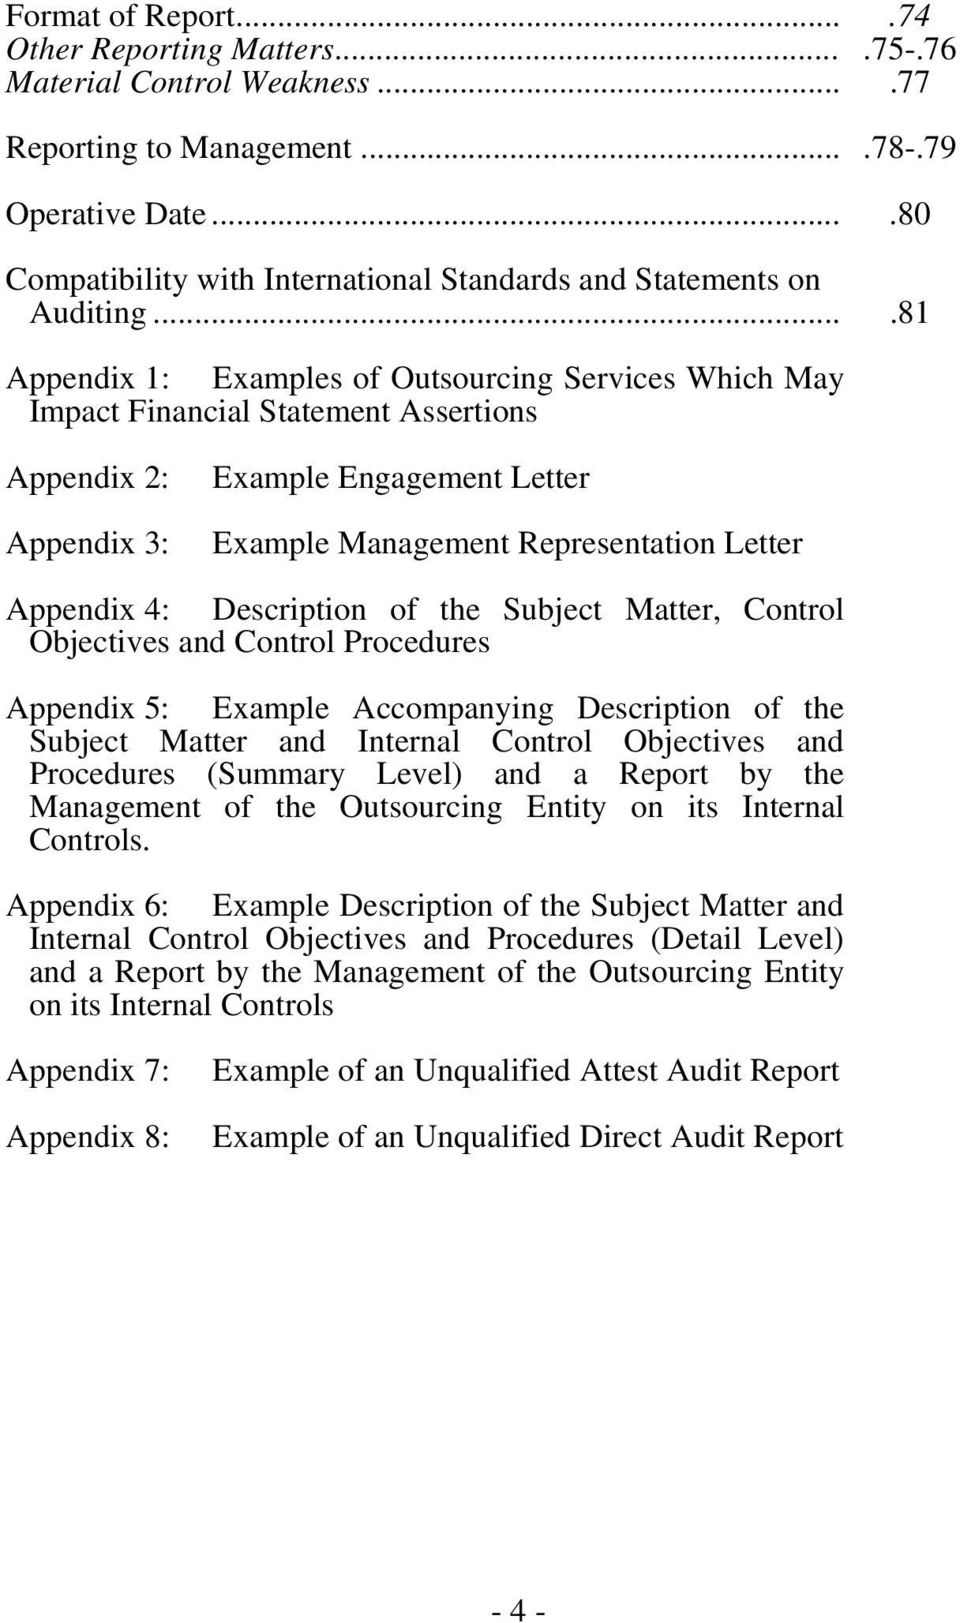 ...81 Appendix 1: Examples of Outsourcing Services Which May Impact Financial Statement Assertions Appendix 2: Appendix 3: Example Engagement Letter Example Management Representation Letter Appendix